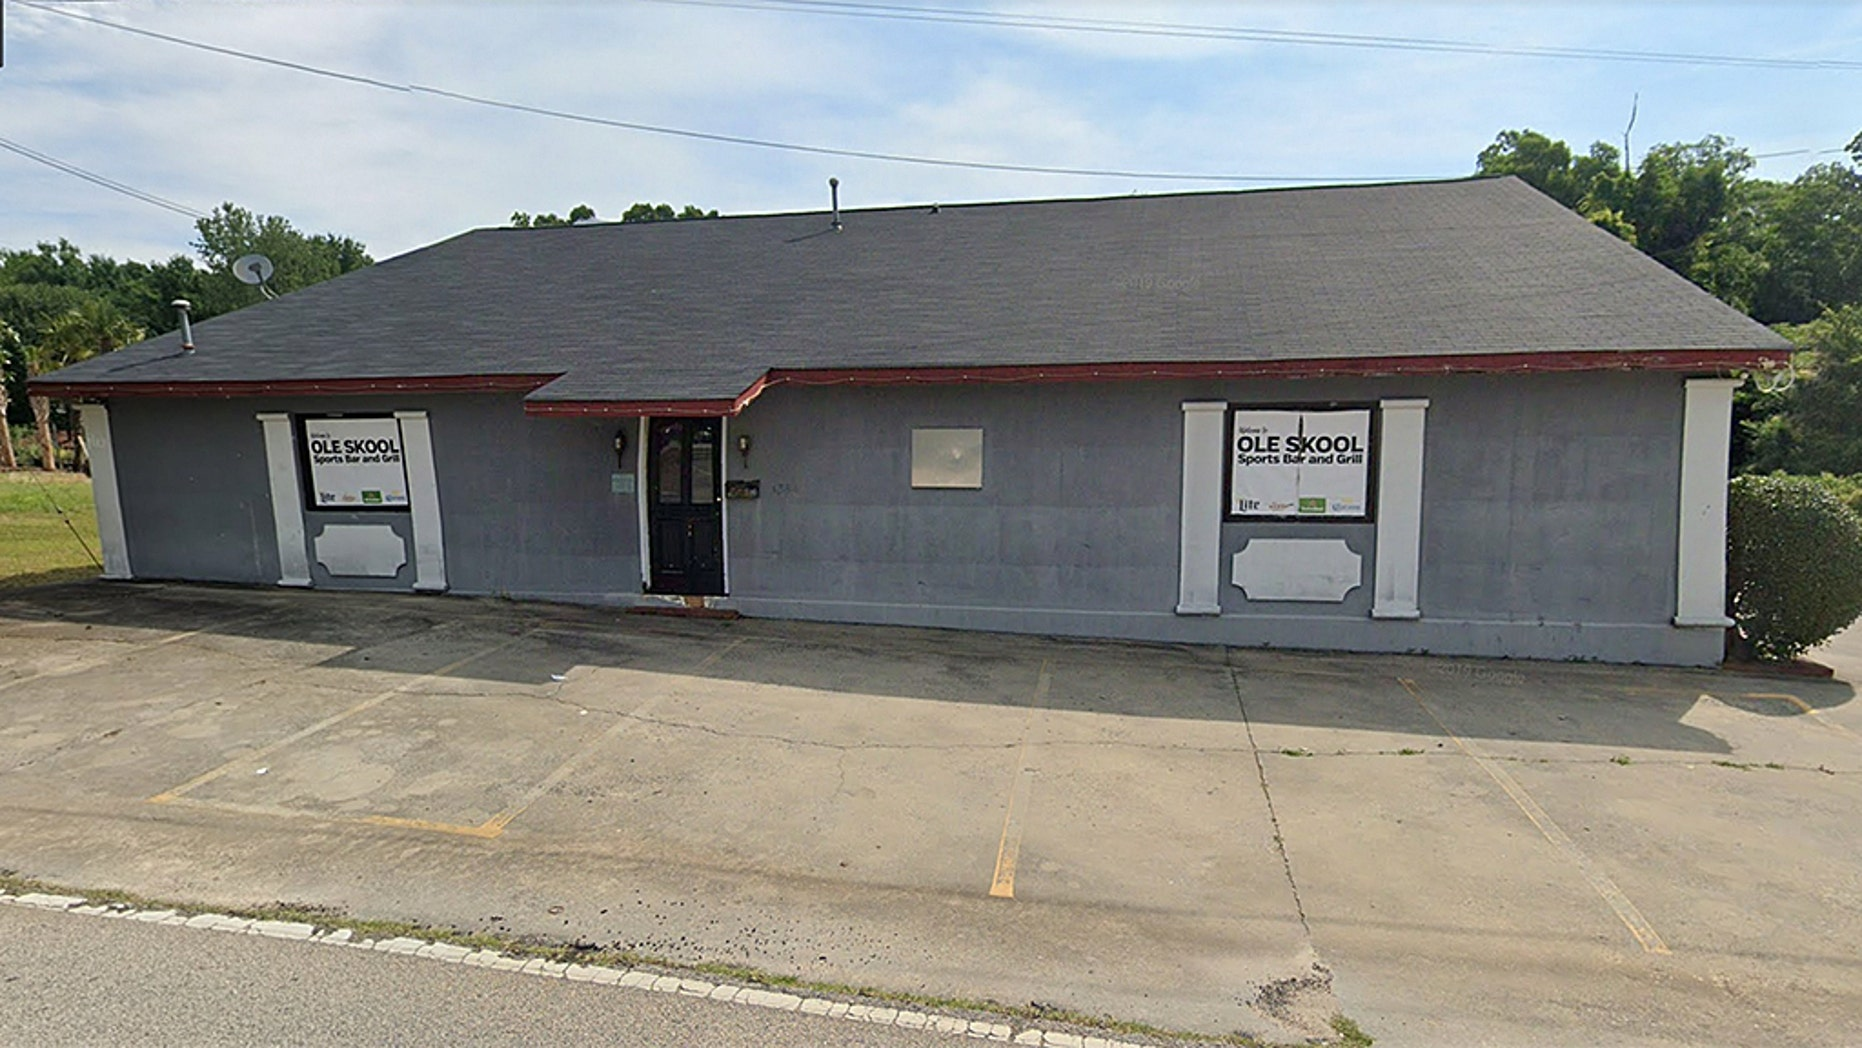 2 killed, 8 injured in SC bar shooting